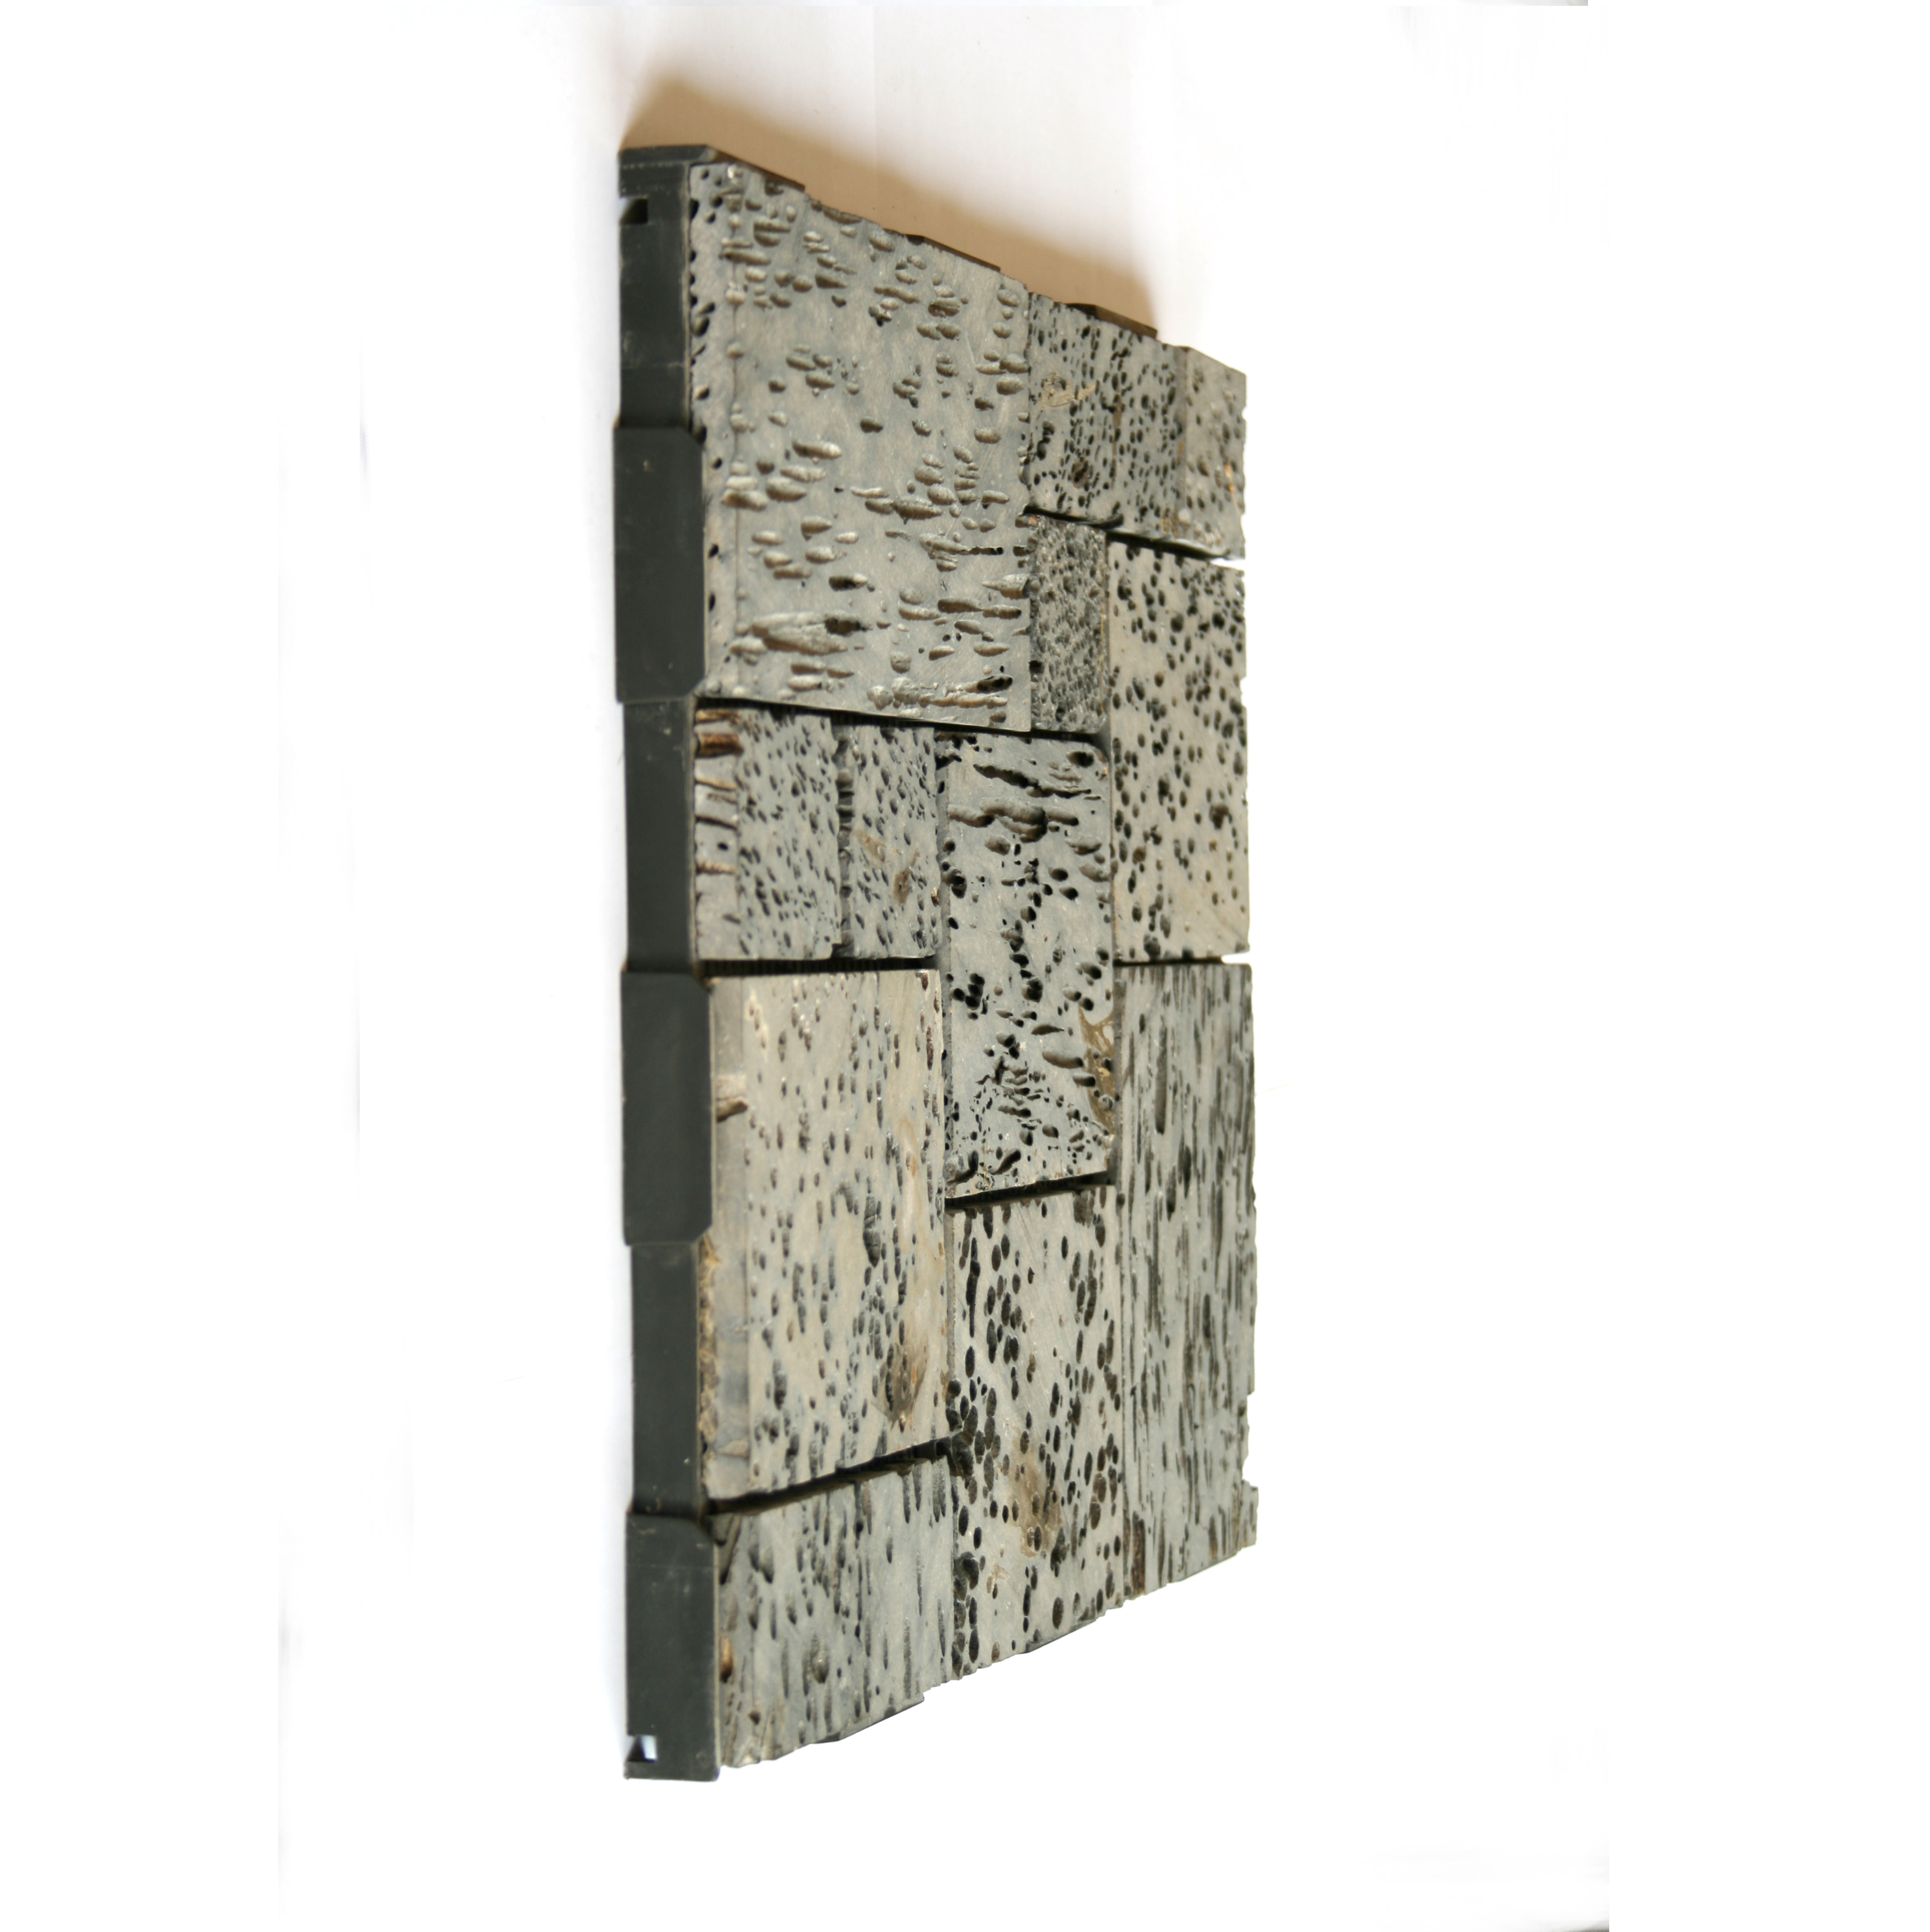 Lava Stone Patchwork 30x30 Garden Tile from the side